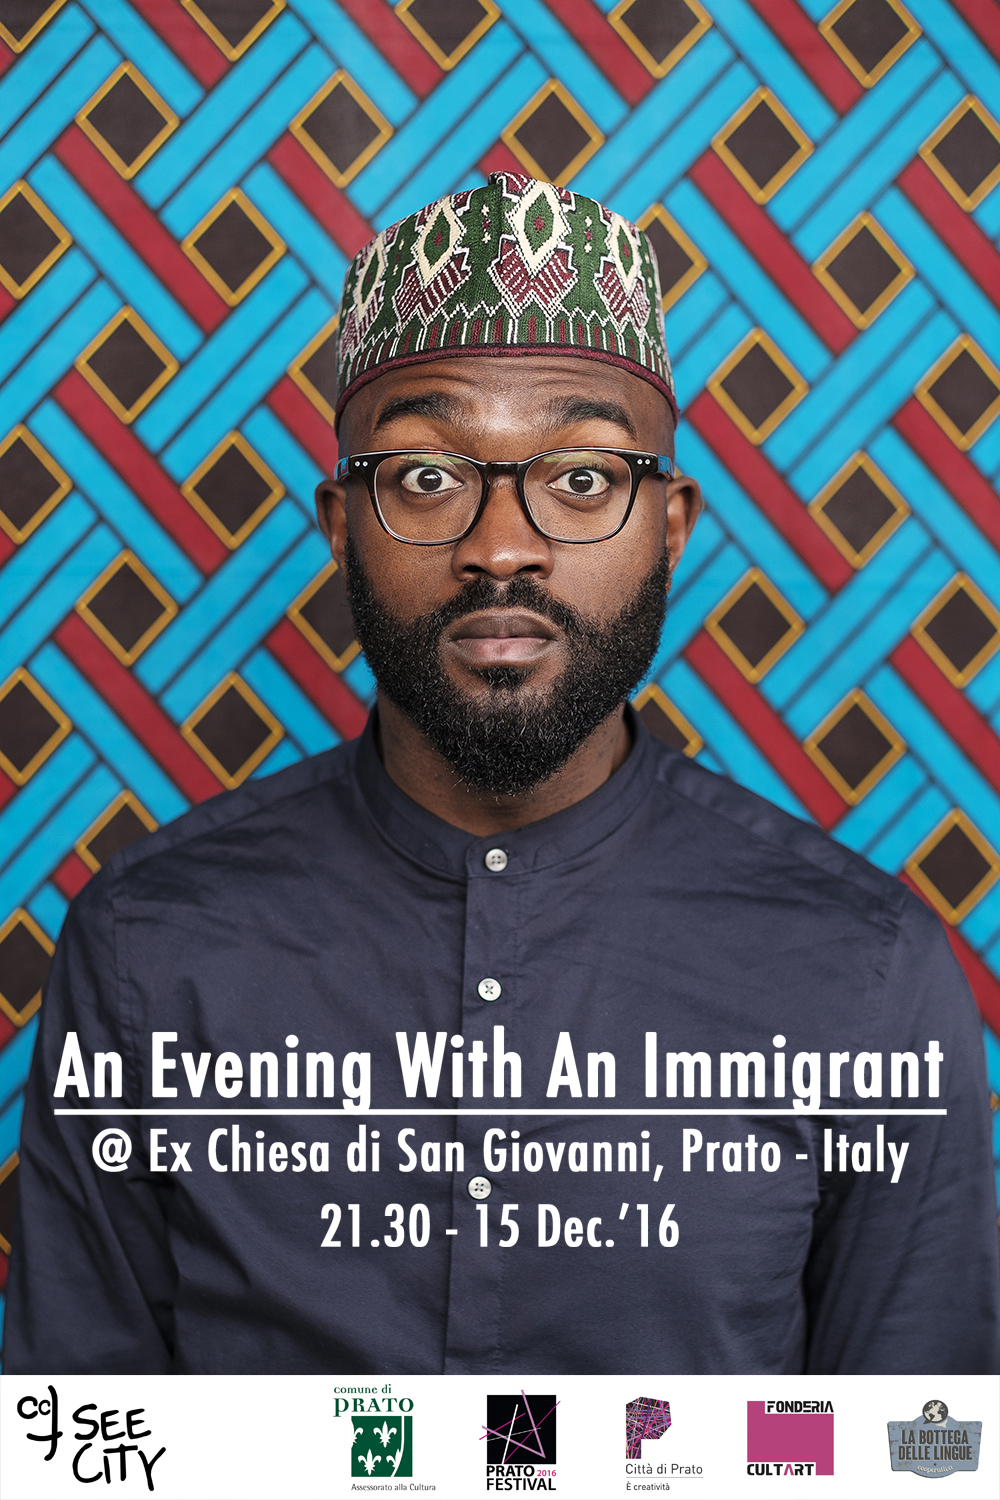 evening with immigrant inglese prato